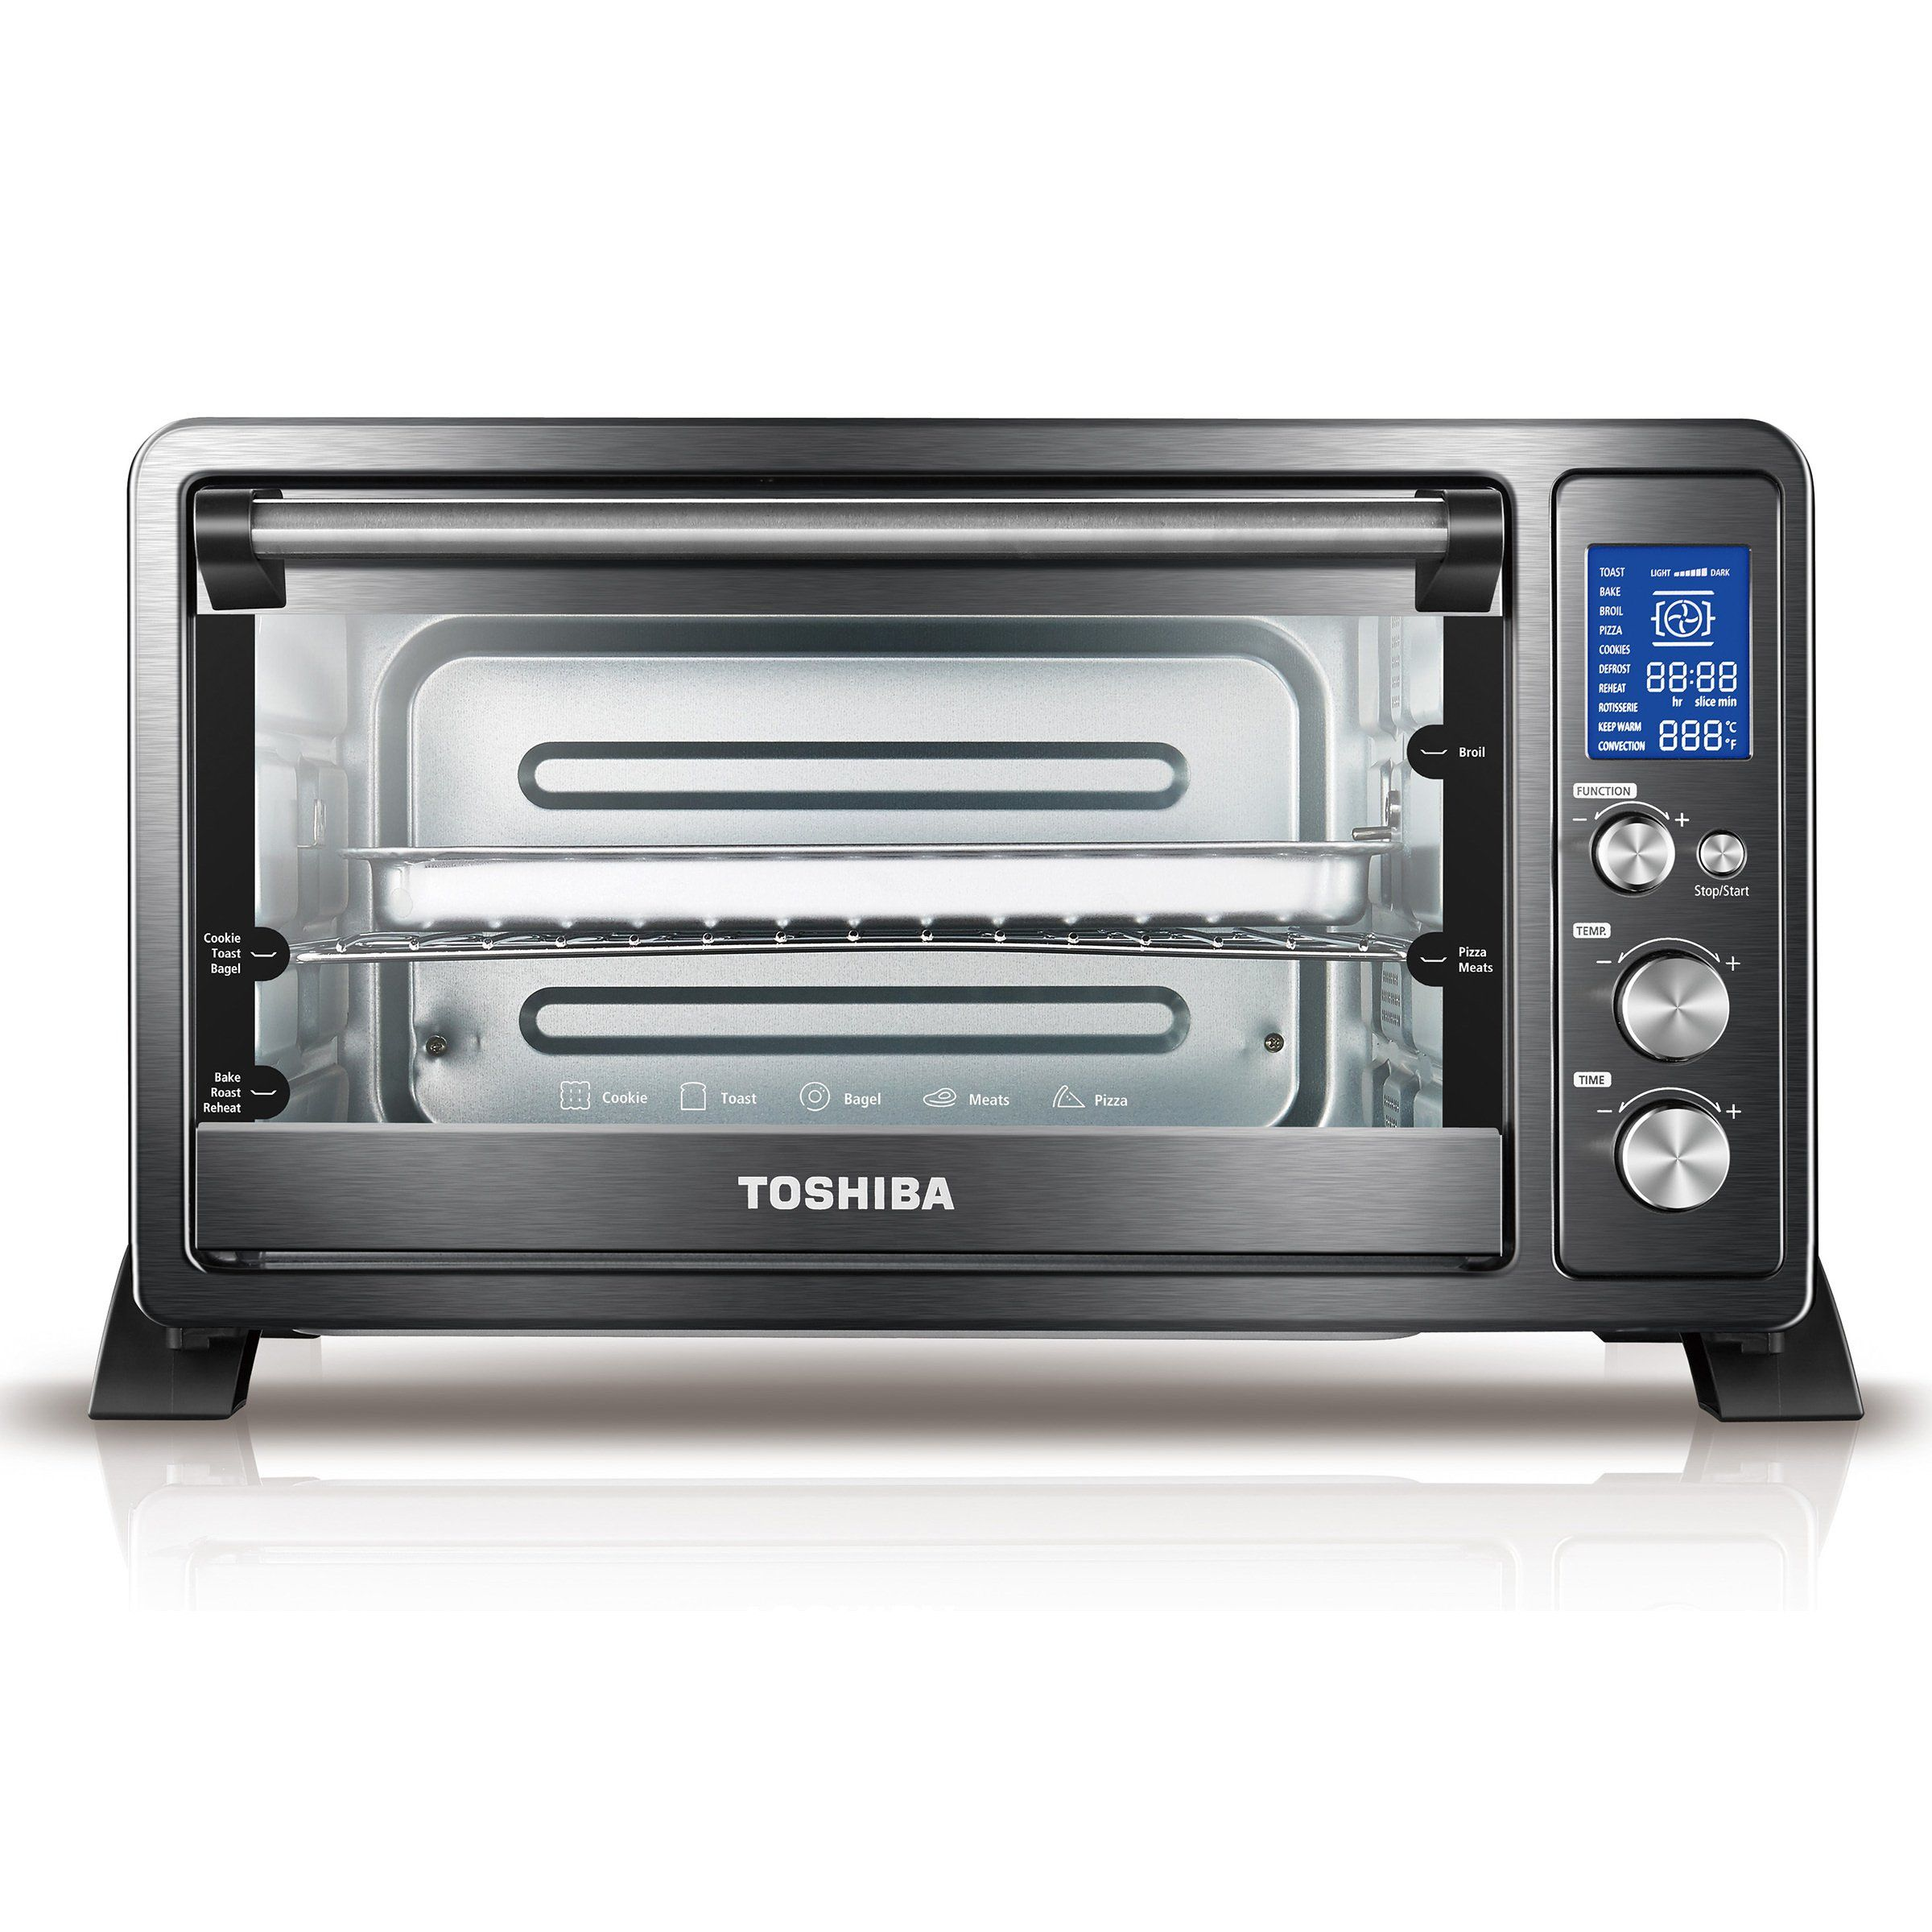 Toshiba Convection Toaster Oven Black Stainless Steel Black